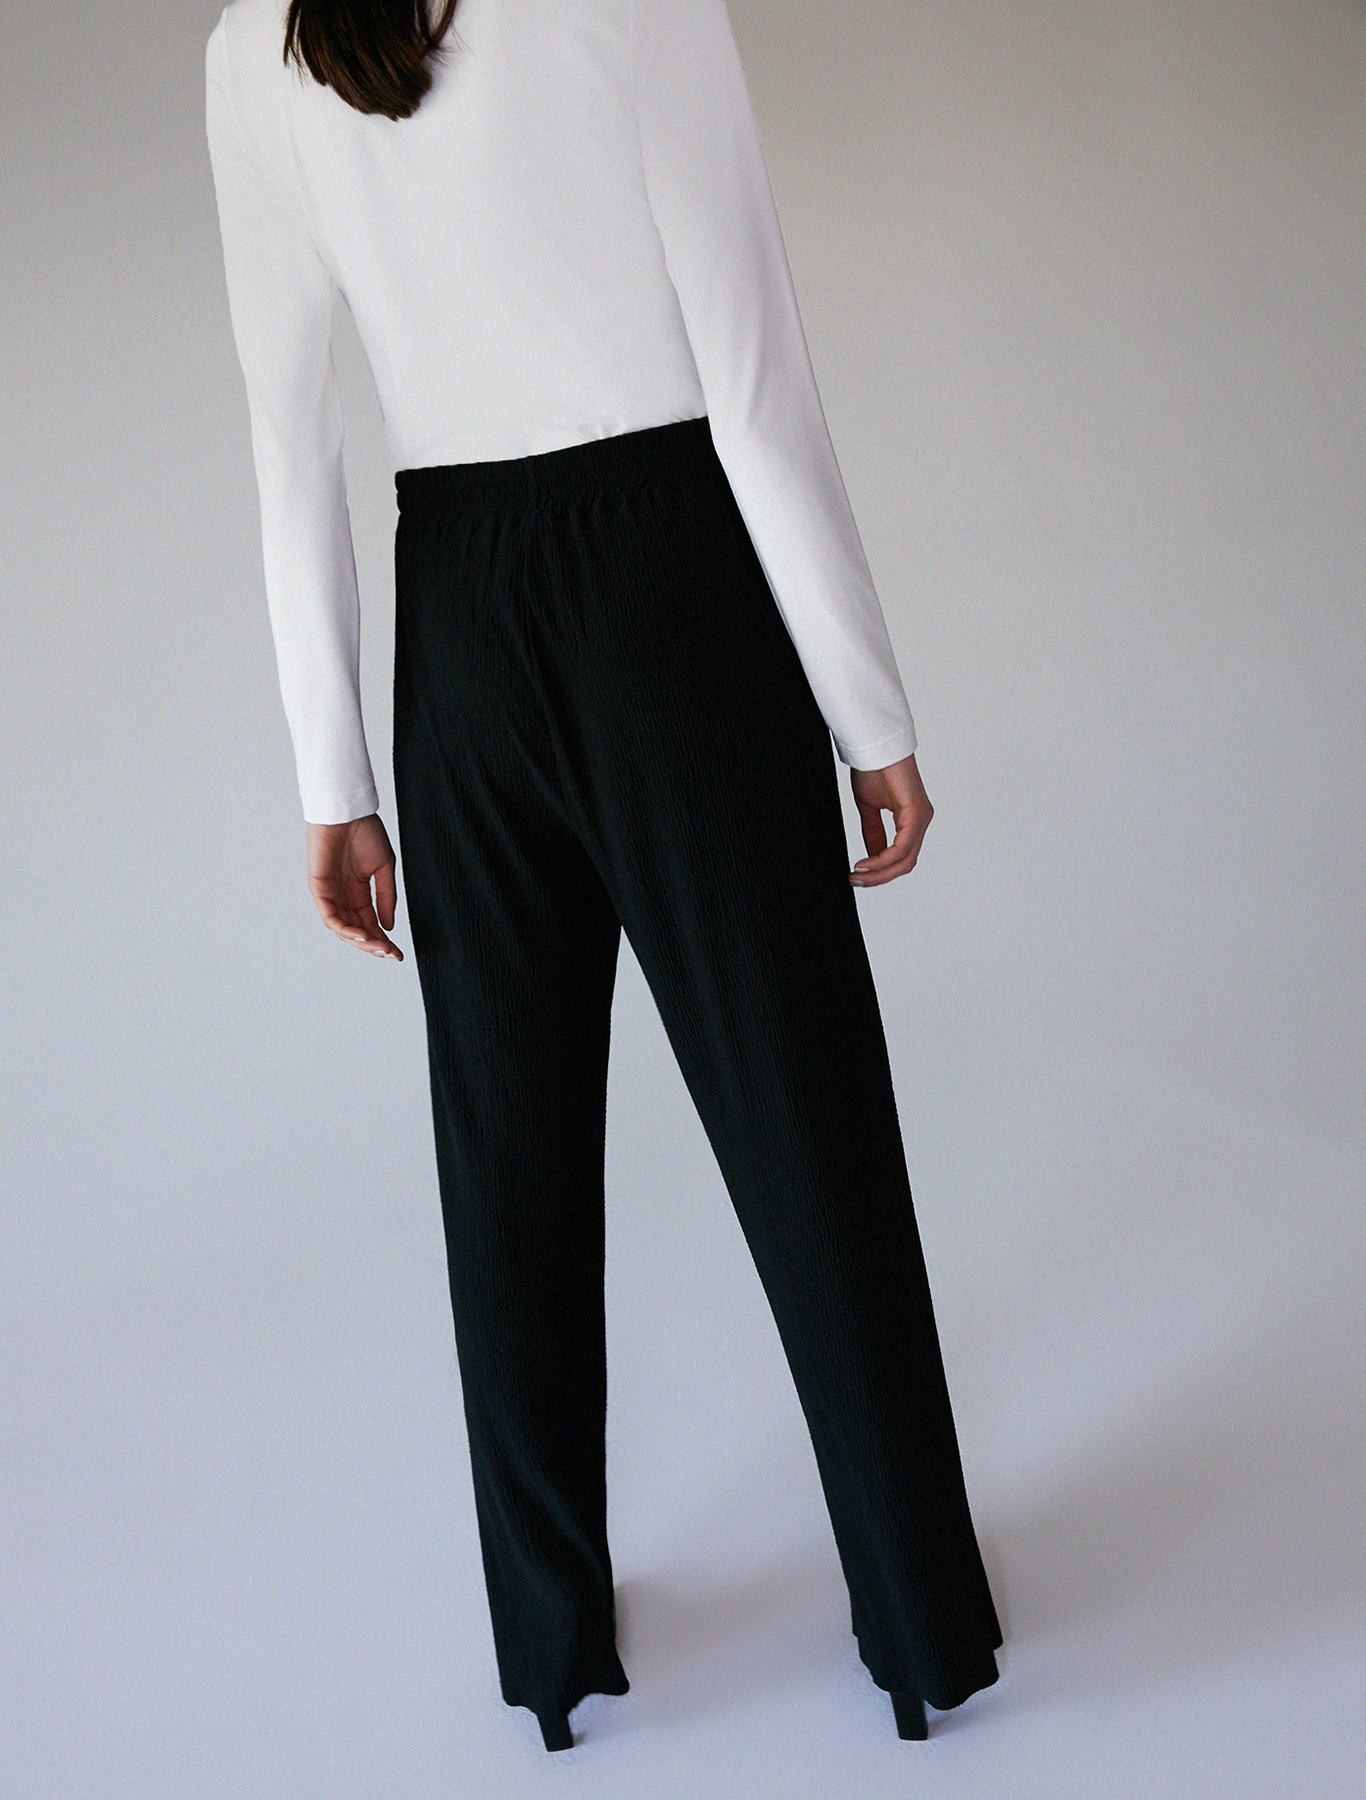 Trousers in micro-pleated jersey - black - pennyblack